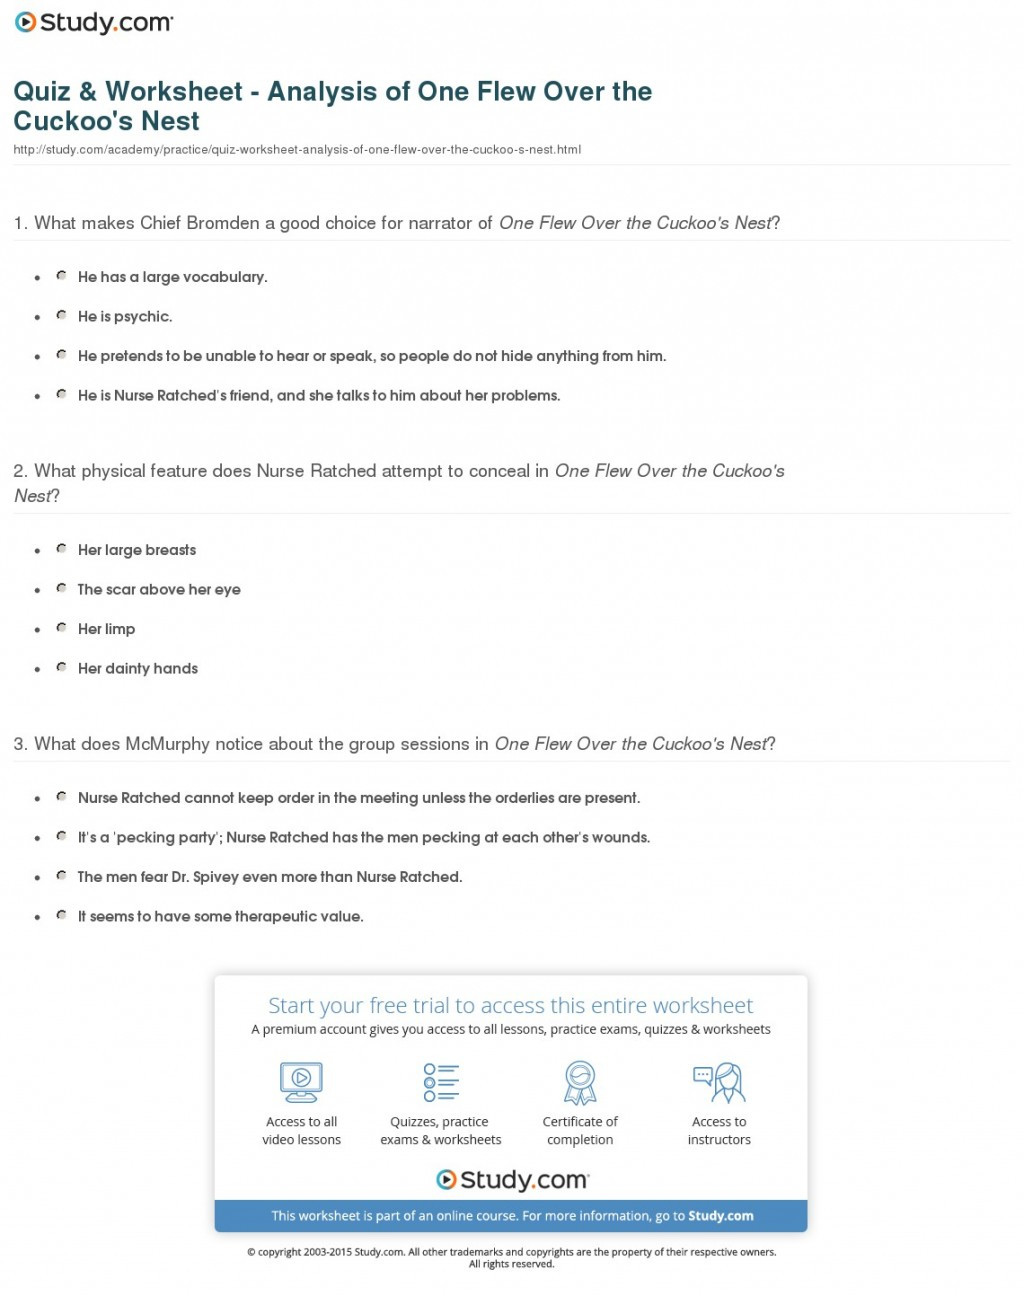 002 Quiz Worksheet Analysis Of One Flew Over The Cuckoo S Nest Essay Example Wonderful Cuckoos Cuckoo's Prompts Writing Questions Large